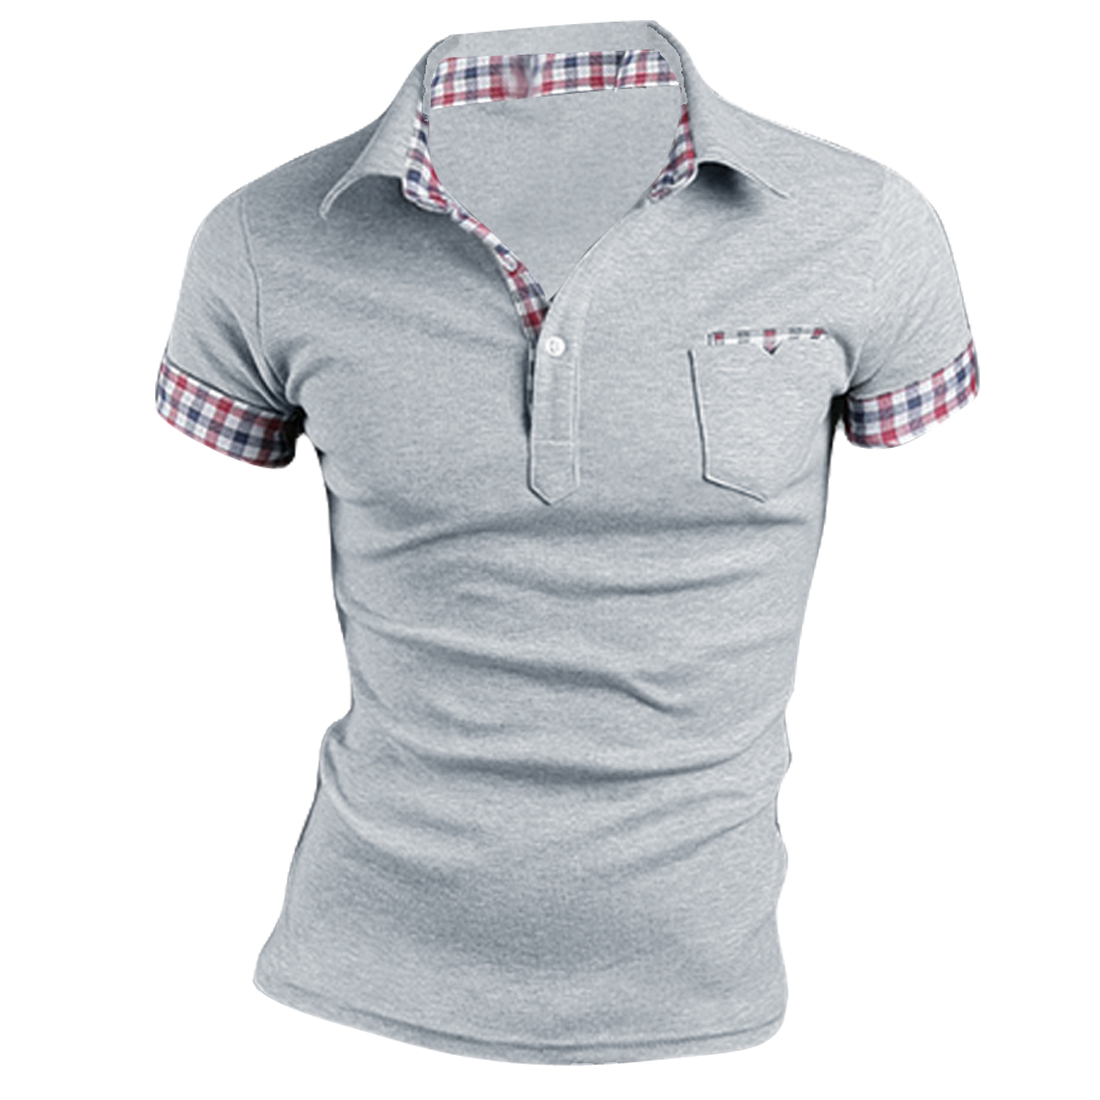 Men Newly Point Collar Short Sleeve Rolled Up Plaid Cuff Light Gray Shirt M